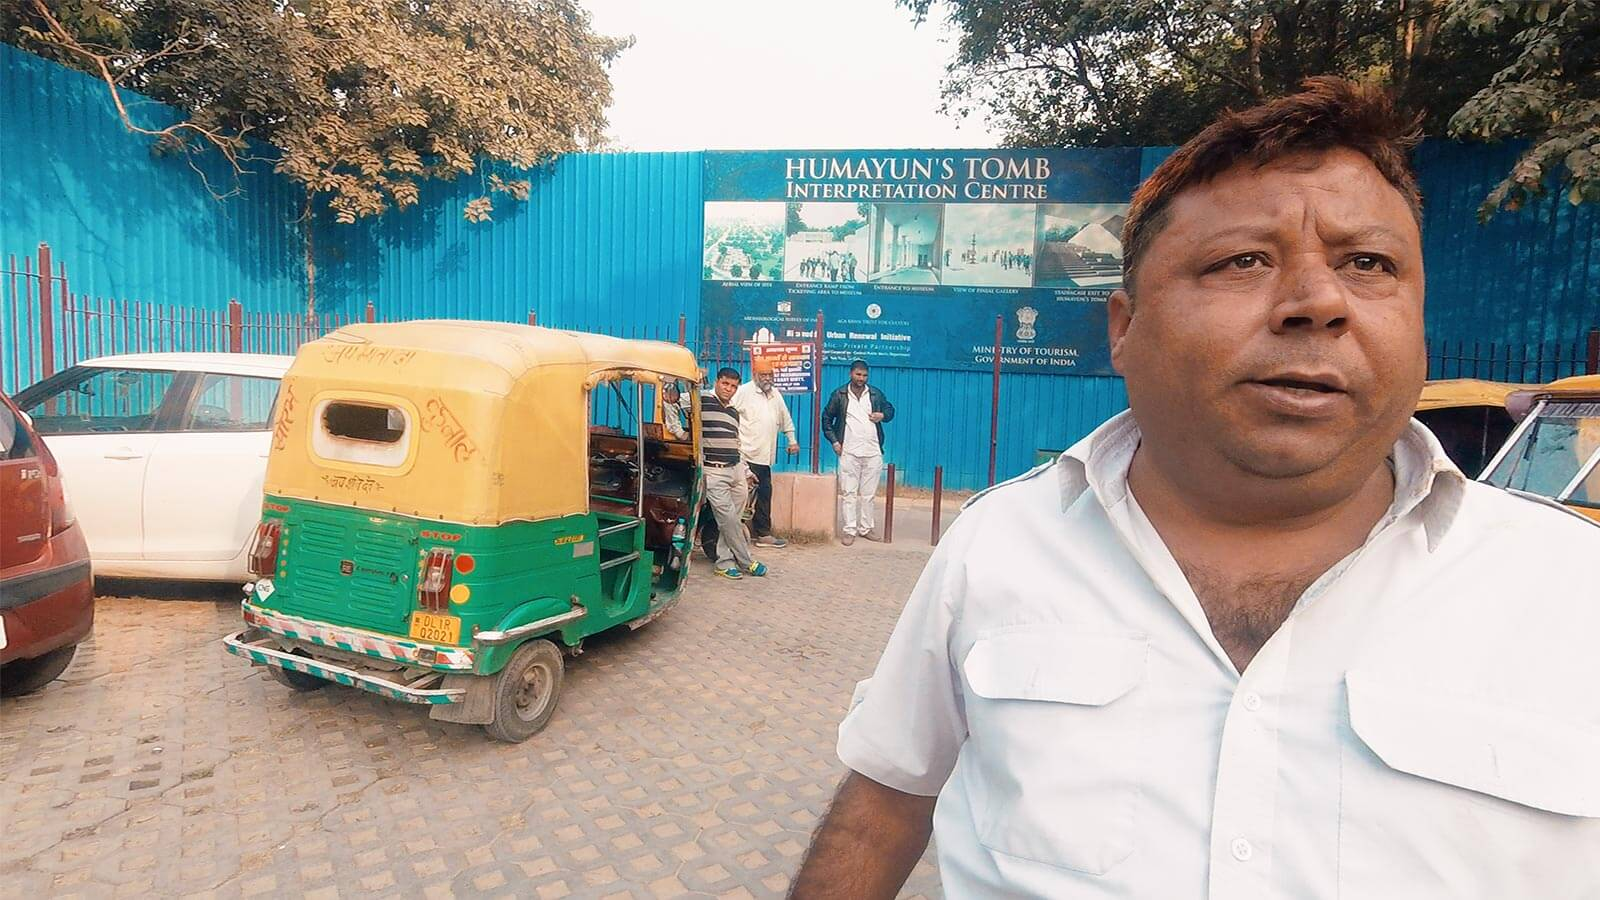 India Rickshaw Scams Exposed & How to Get the Best Price Video. Photo © Karl Rock.